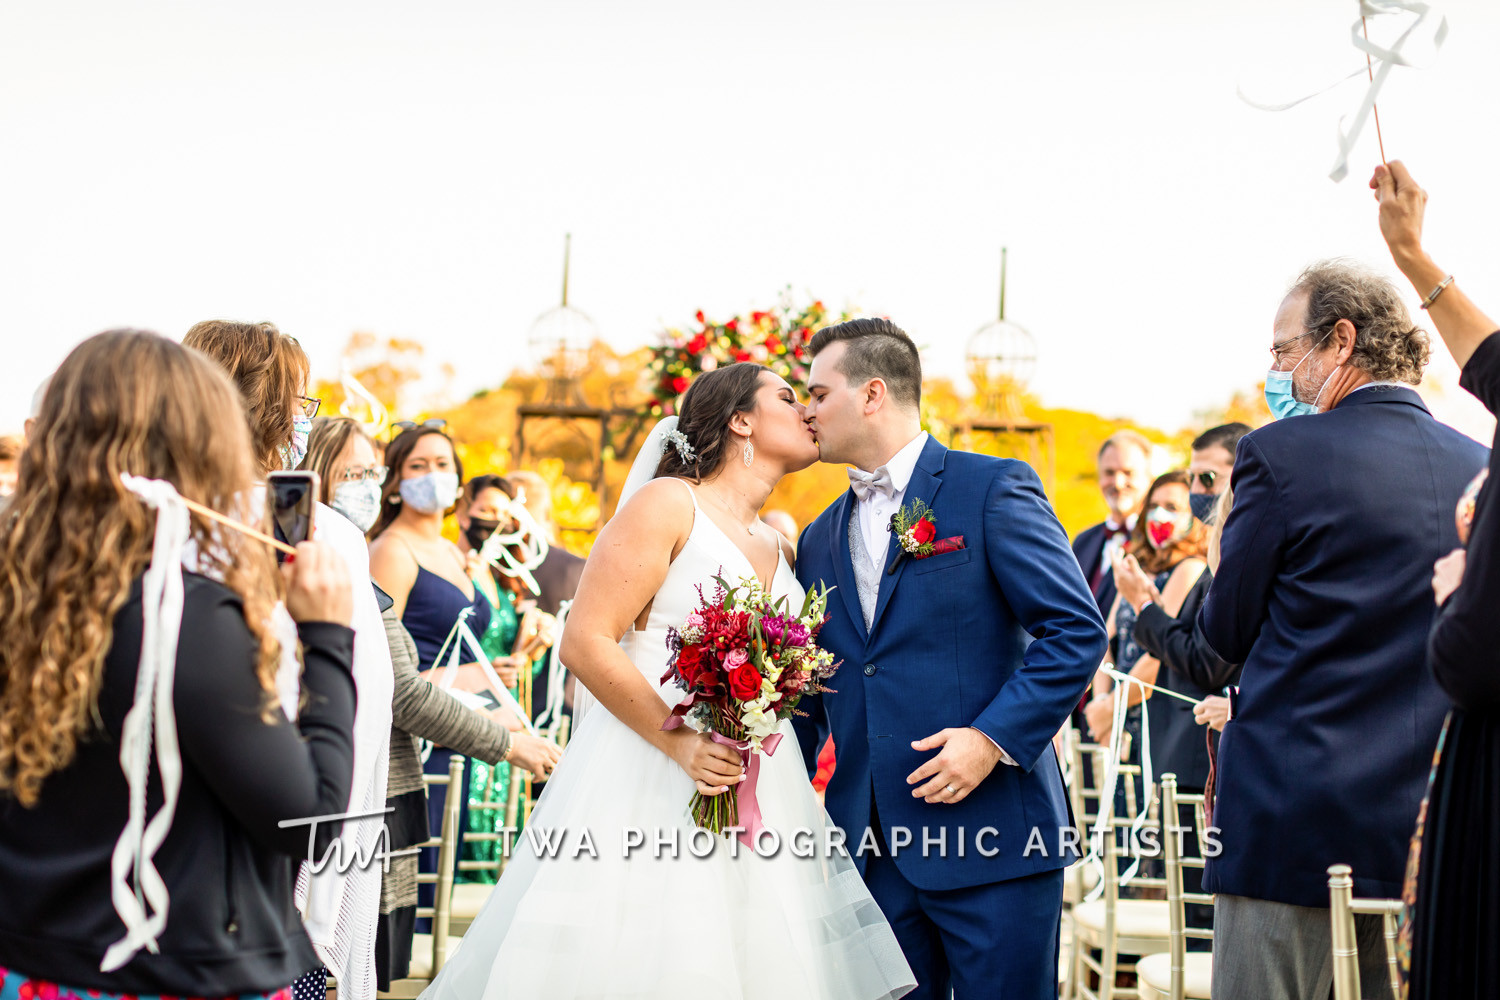 Chicago-Wedding-Photographer-TWA-Photographic-Artists-Avante-Banquets_Zickert_Quaas_MD_SG-0626